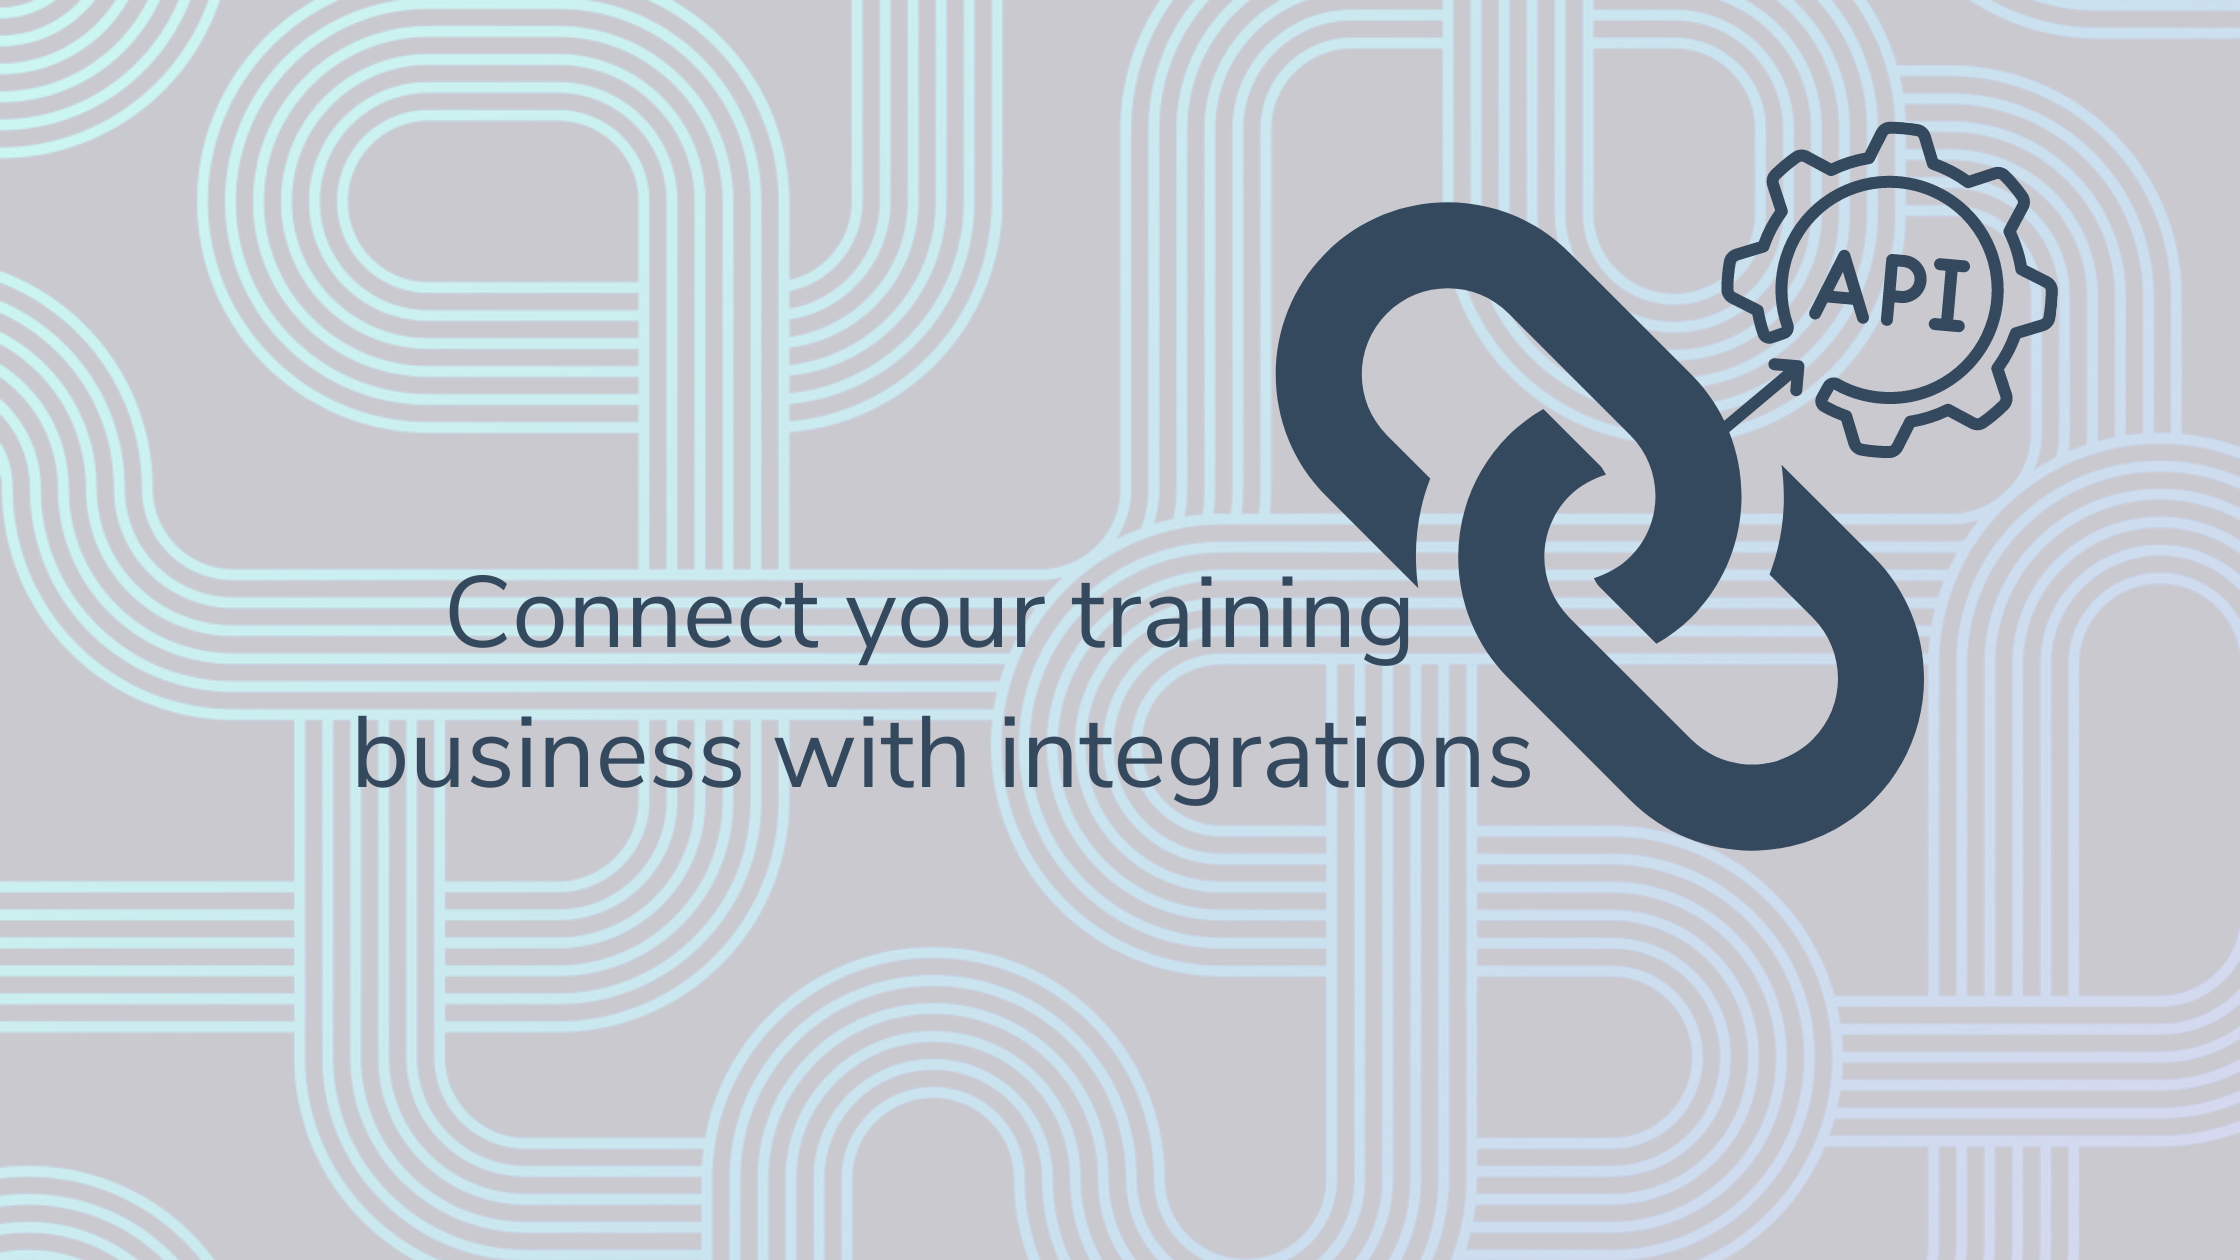 Connect your training business with integrations